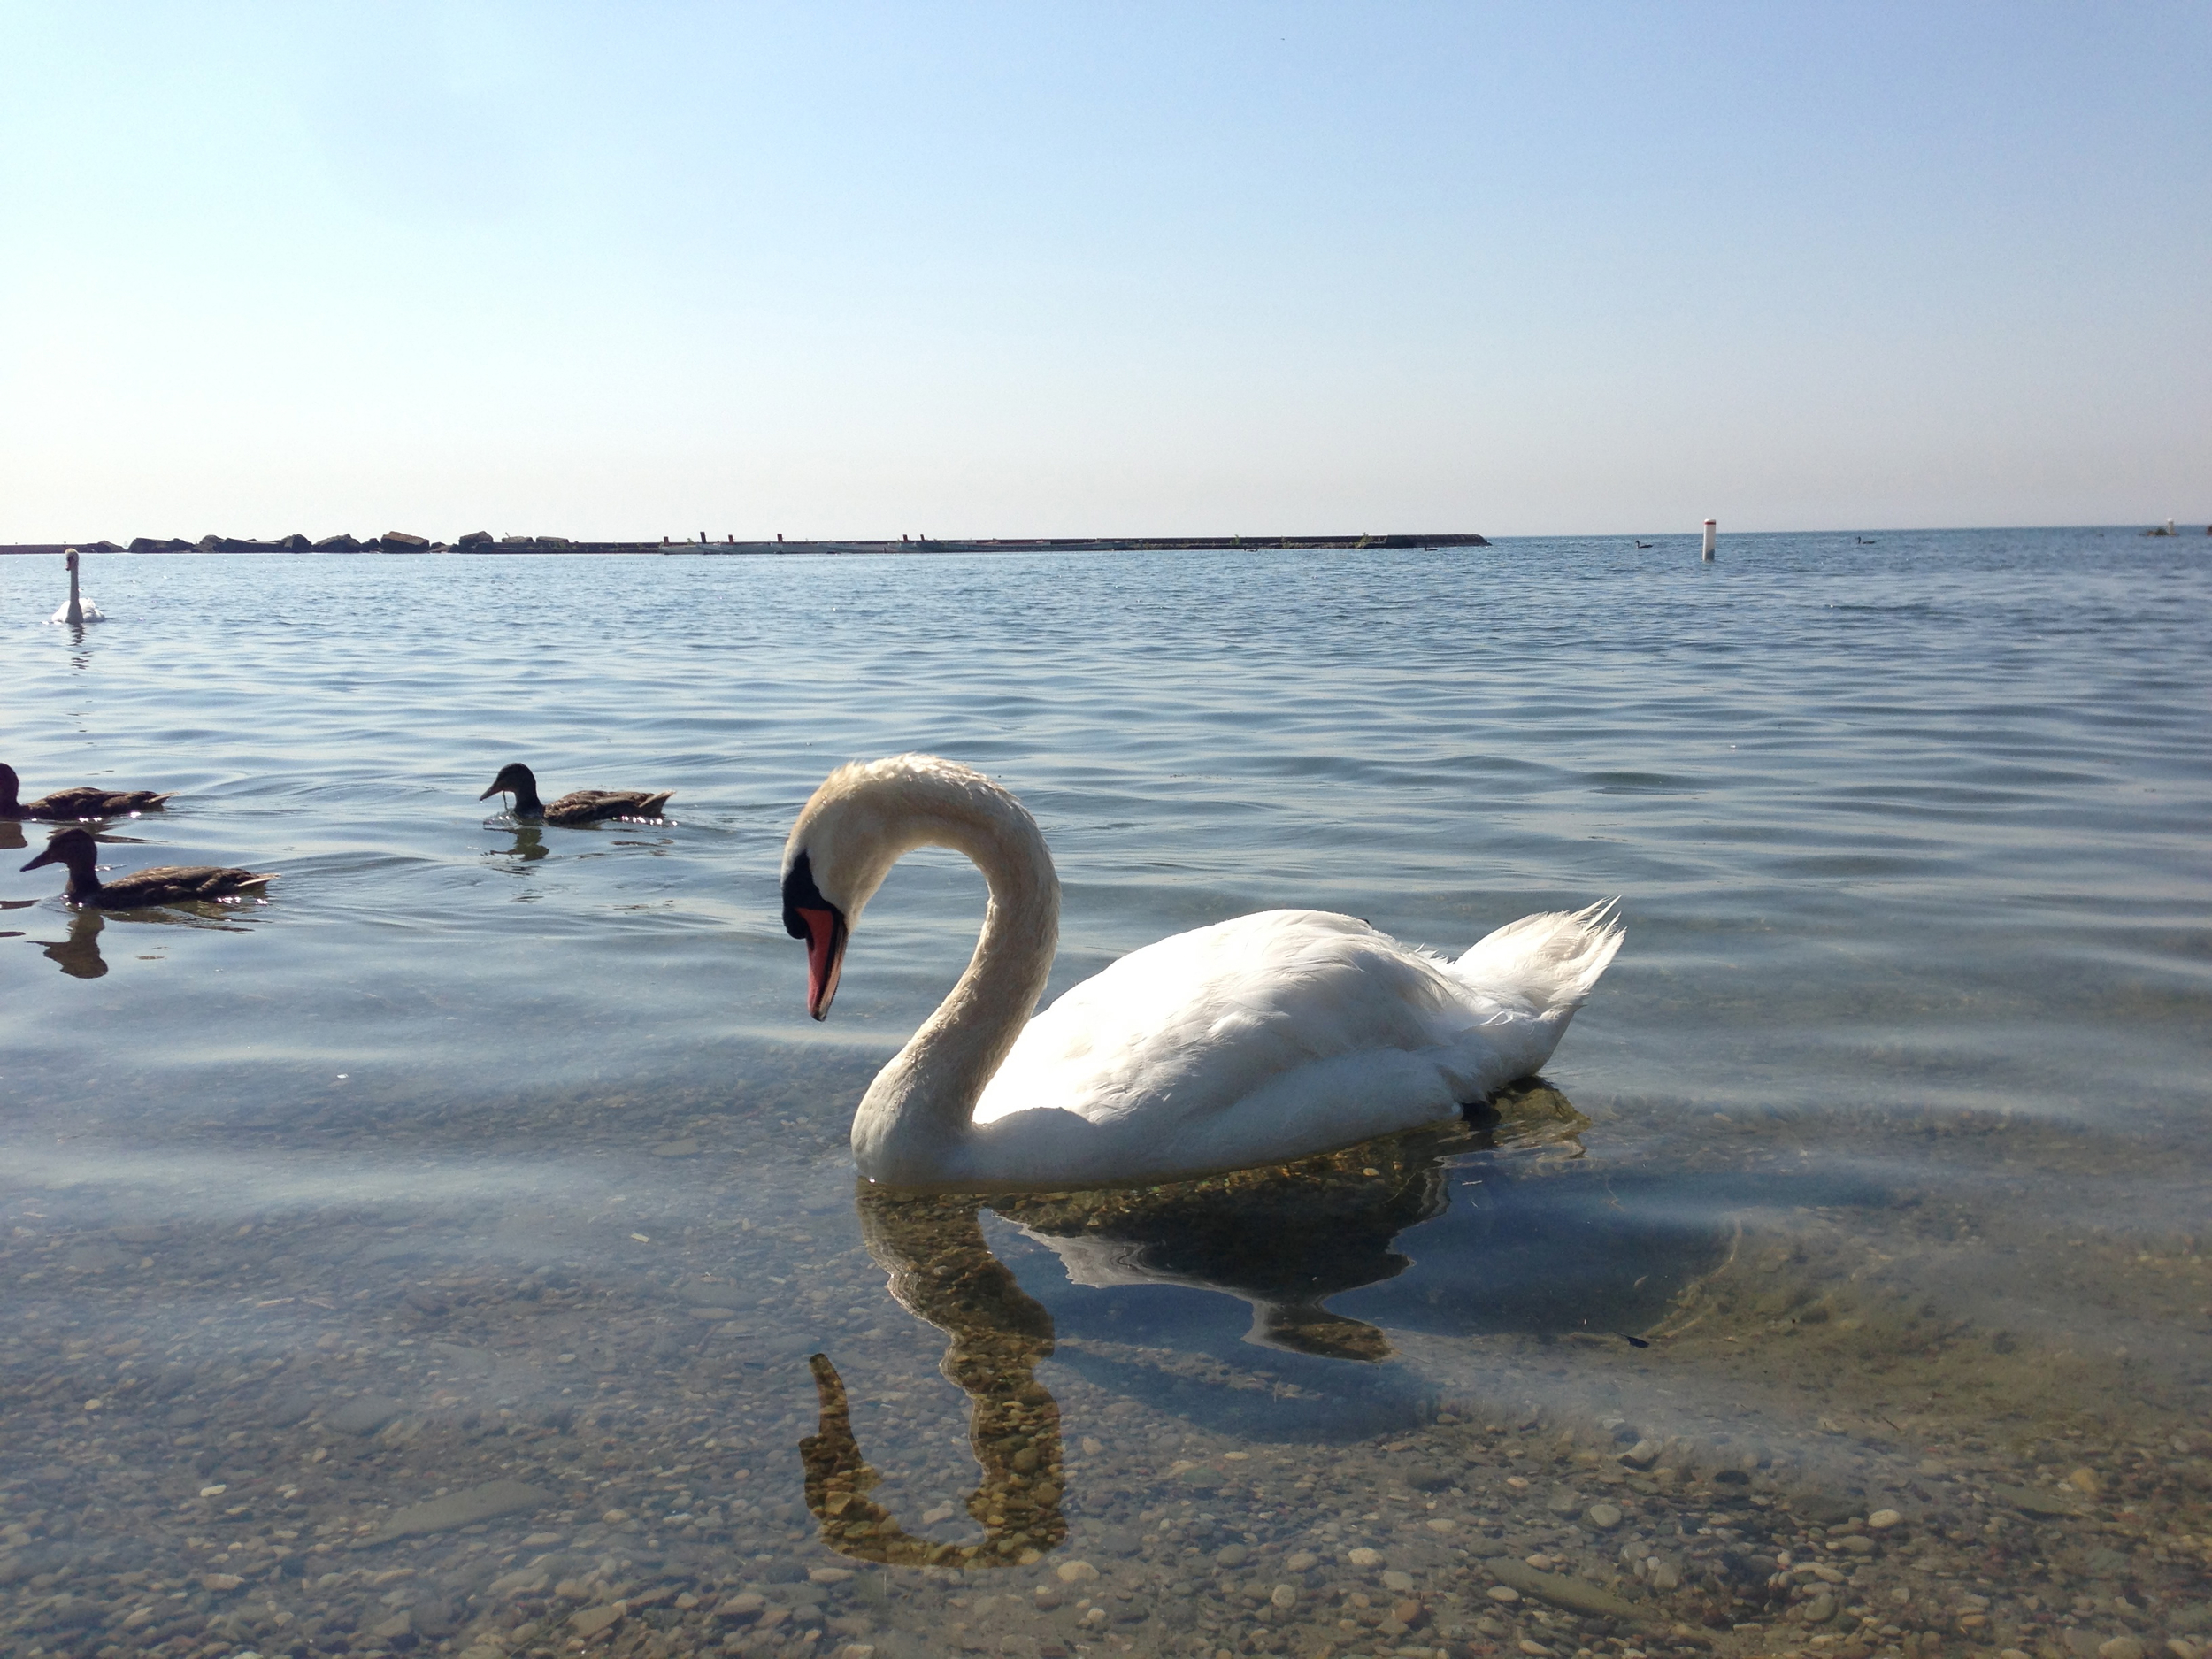 Swans and other waterfowl in bacteria-laden water post-flood. Photo courtesy of Lake Ontario Waterkeeper. July 16, 2013.